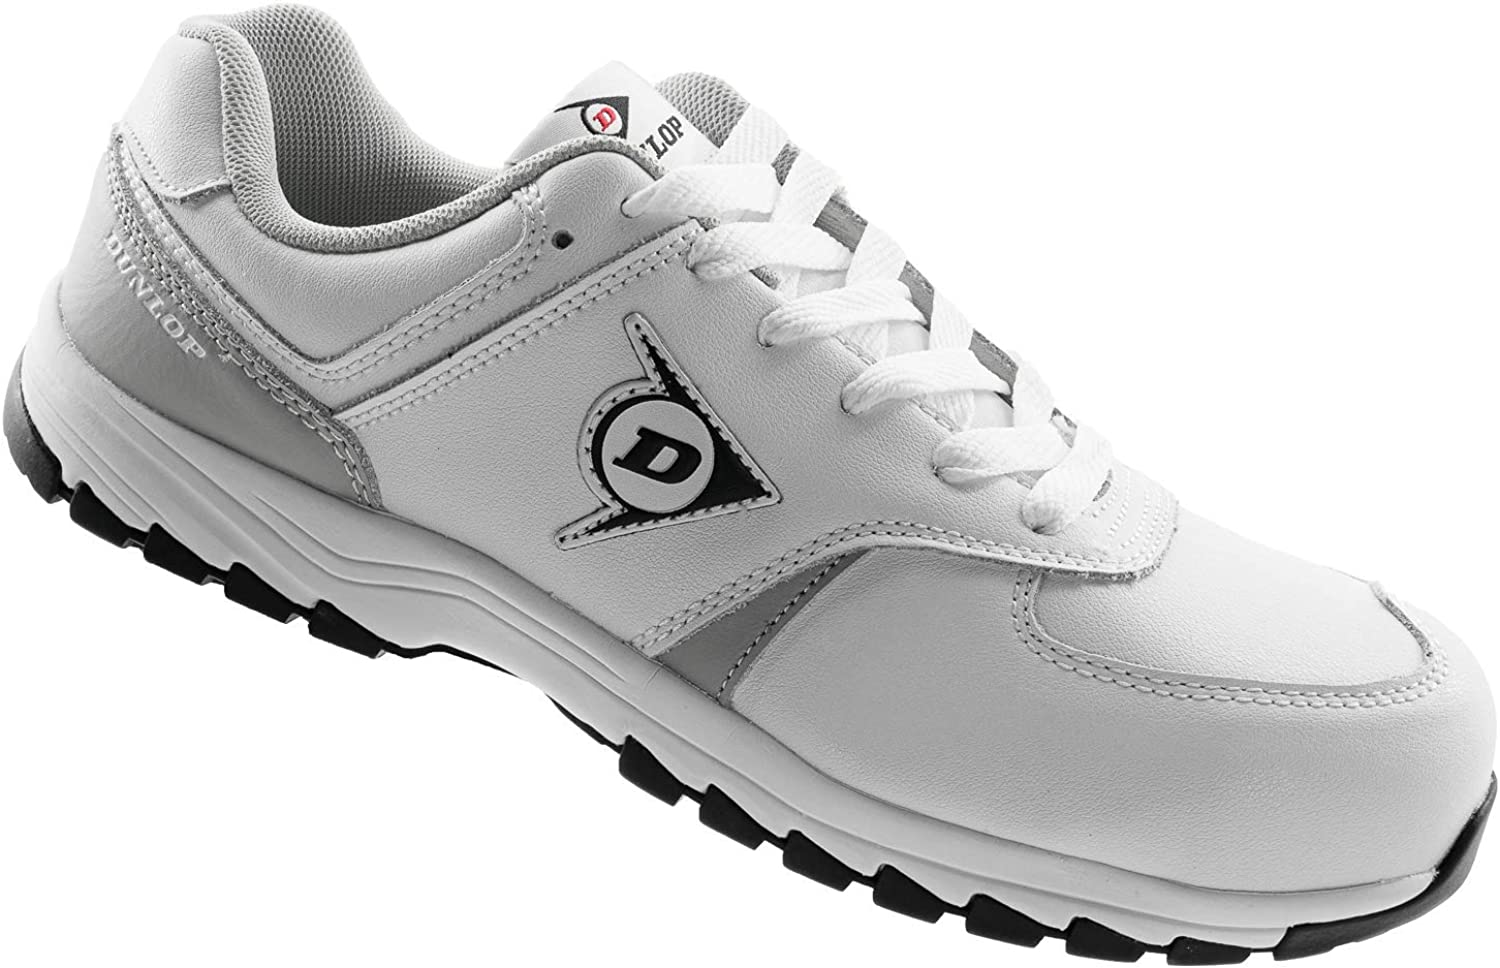 Dunlop White Safety Shoes S3 - Painter